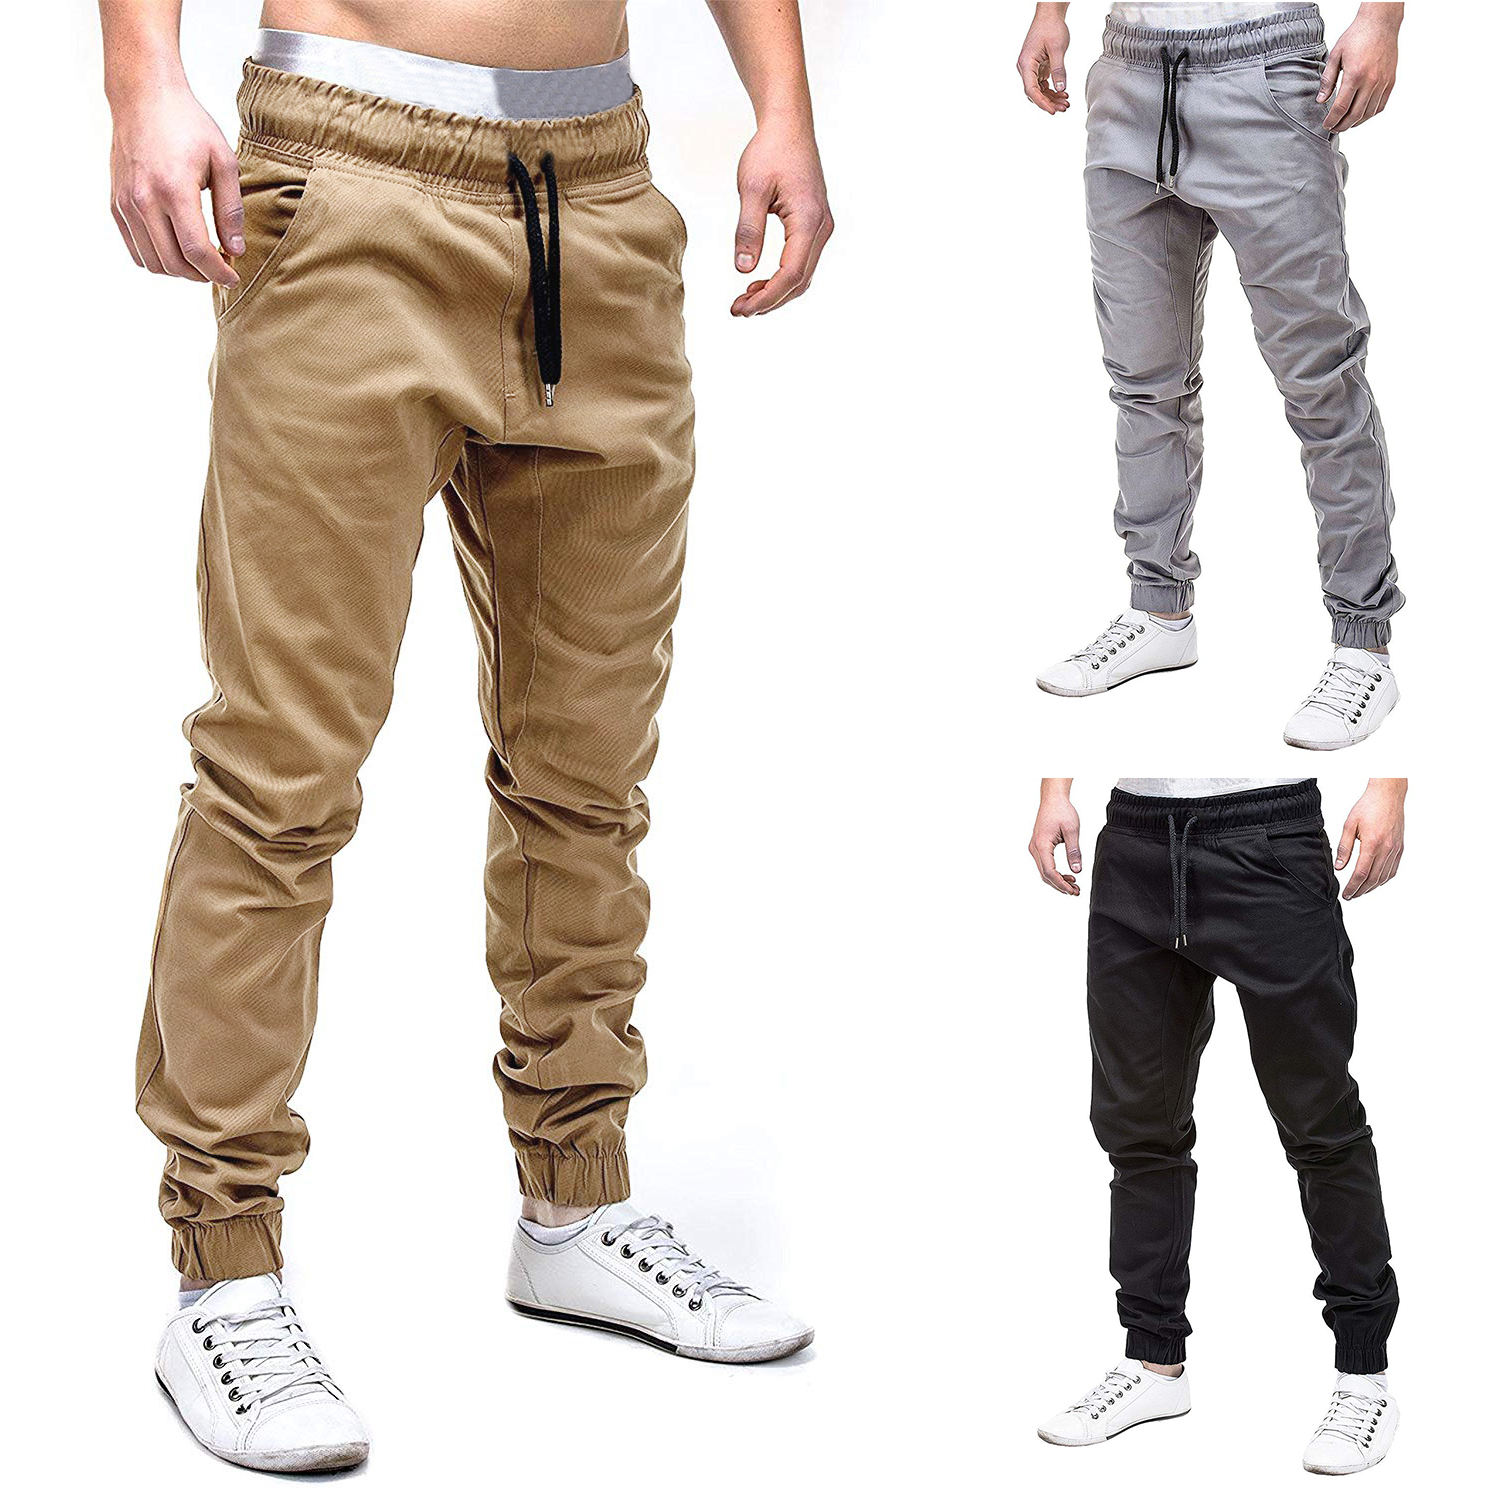 Men's Casual Pants Elastic Jogging Pants Sturdy Pockets Baggy Pants New Fashion Chinos Stretch Cuffs High Quality Large Size6XL